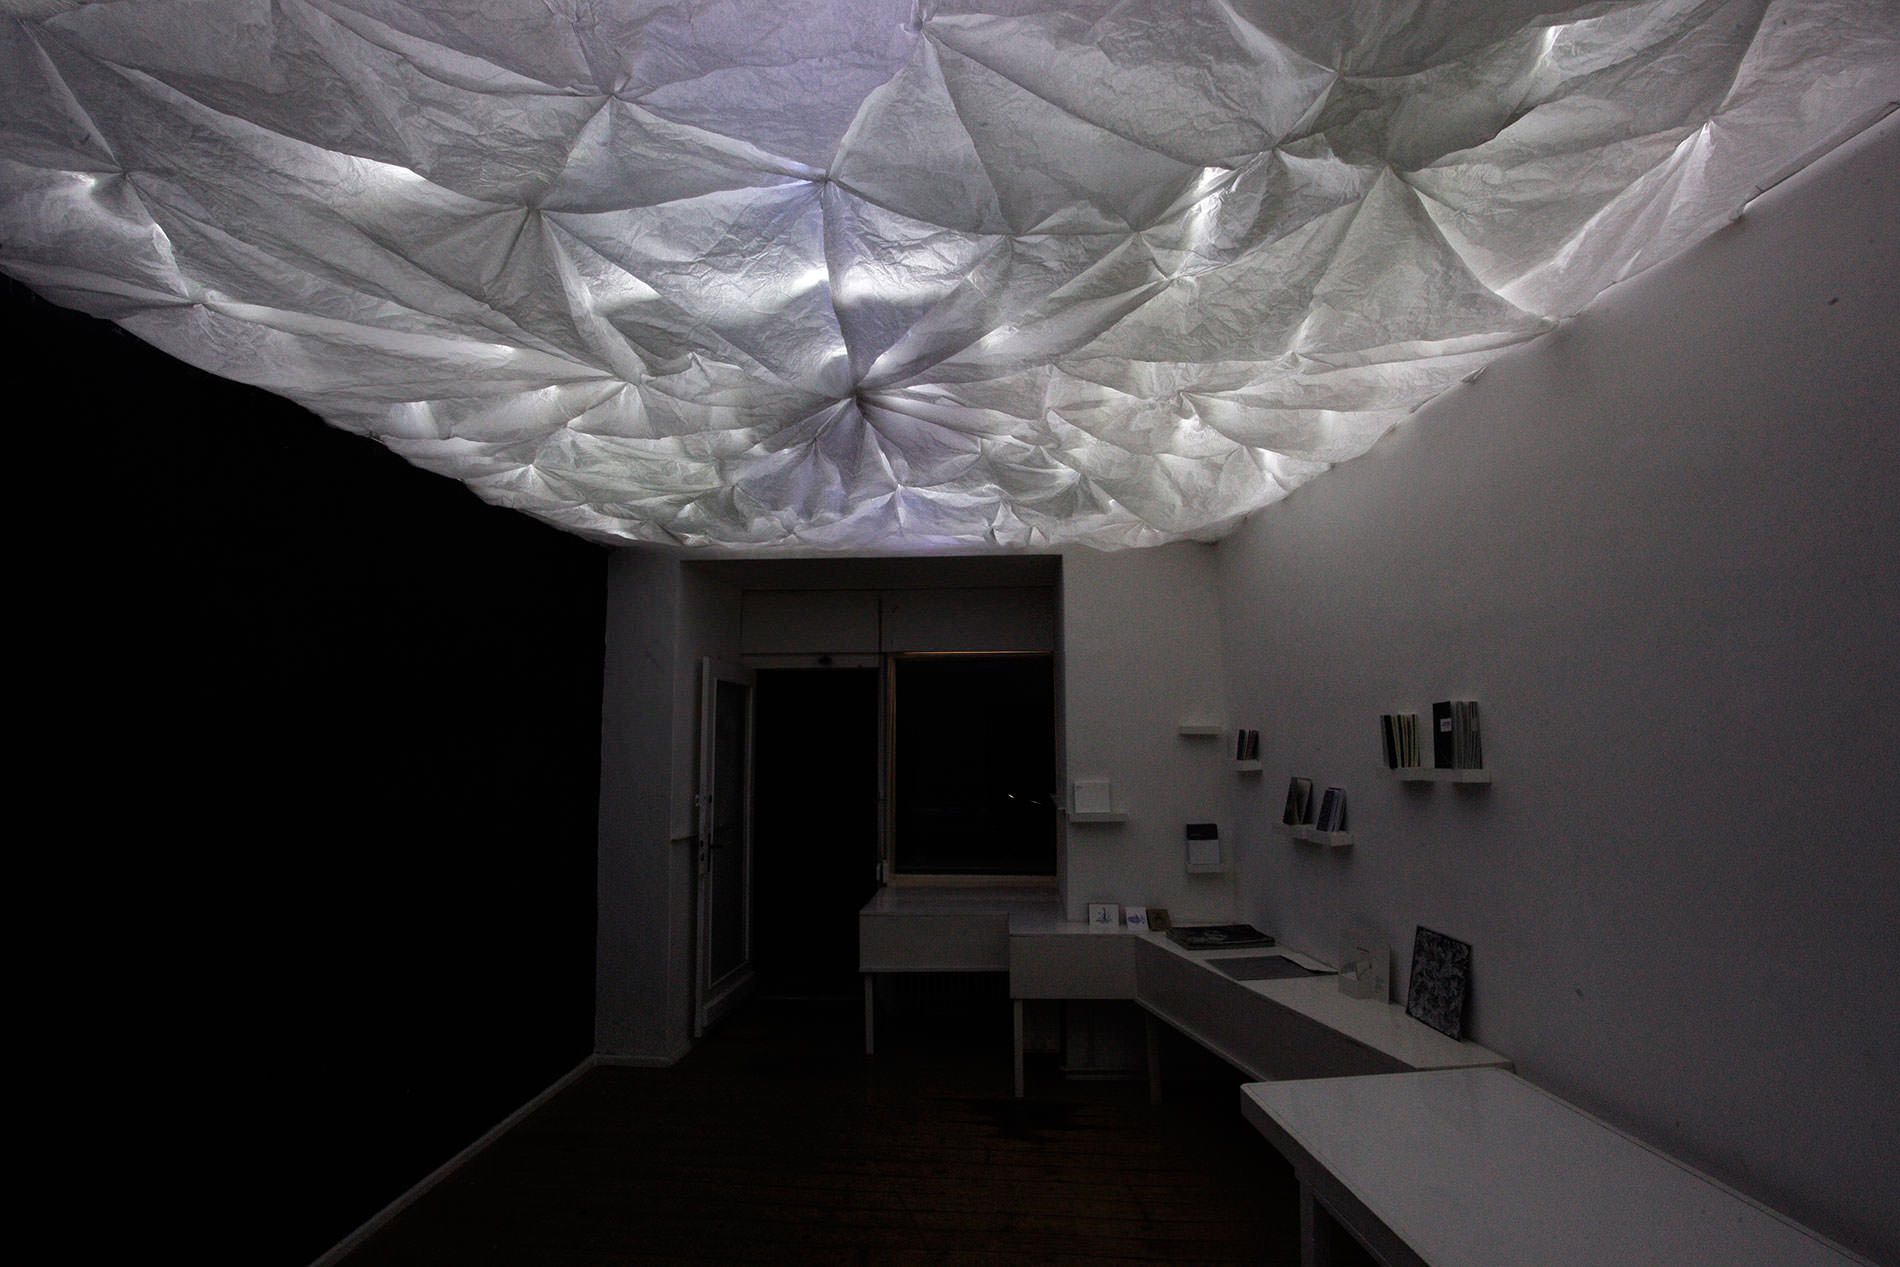 crumple white pendant lamp lighting work crumple crumple white pendant lamp lighting beautiful the resulting effect of largescale paper light shading on gallery space this installation consists